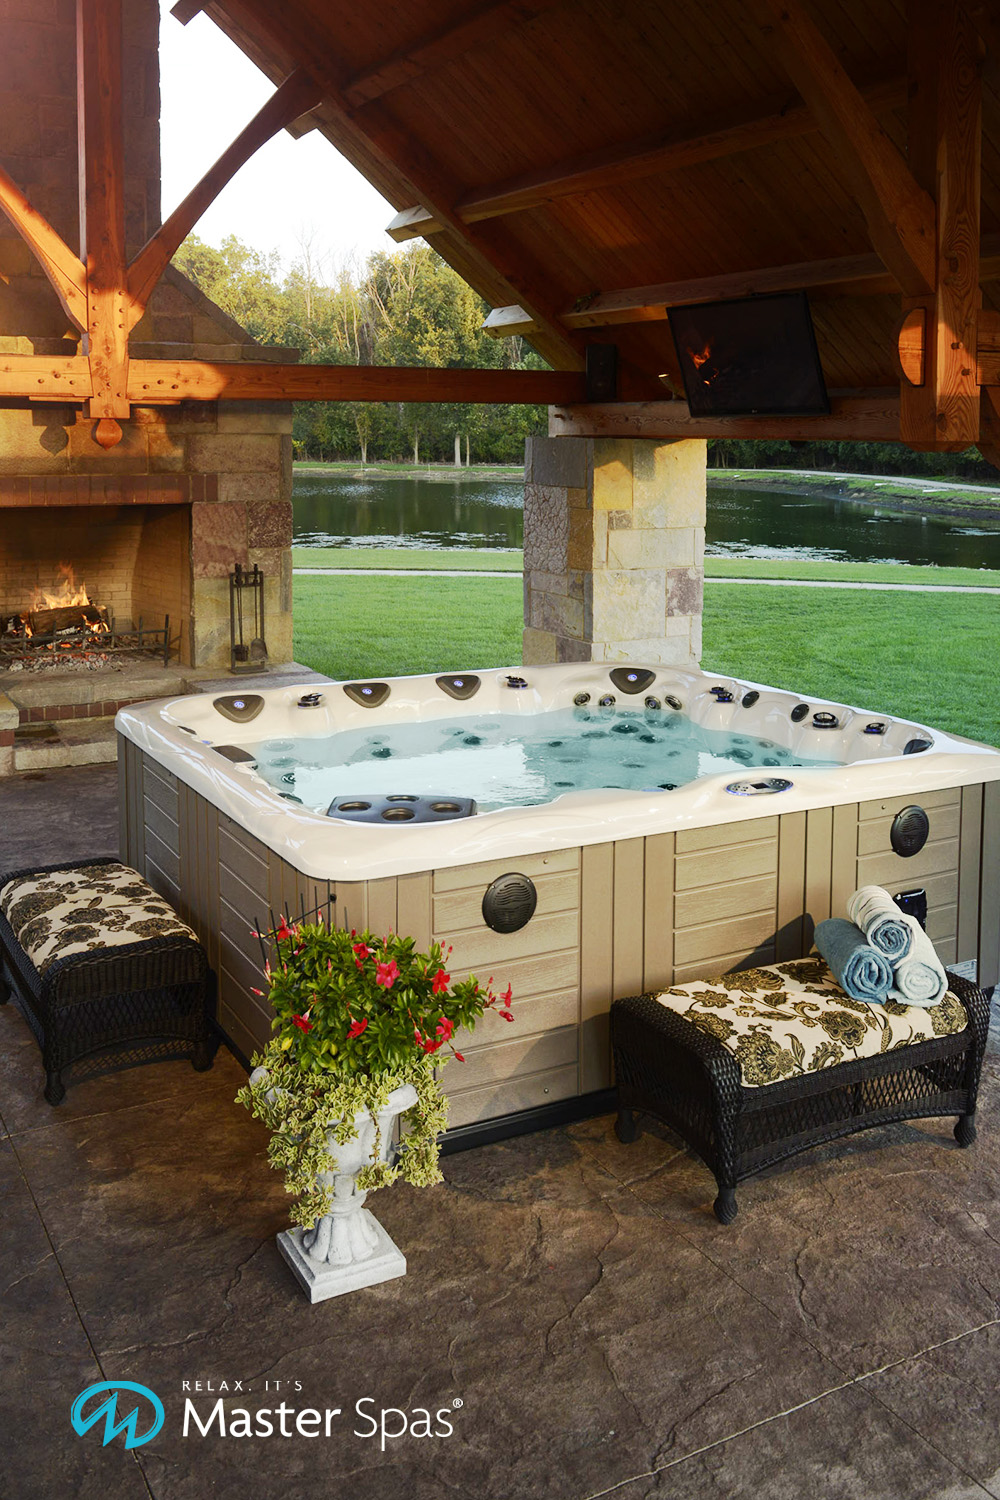 Hot Tub Enclosures to Inspire Your Backyard Makeover - Master Spas